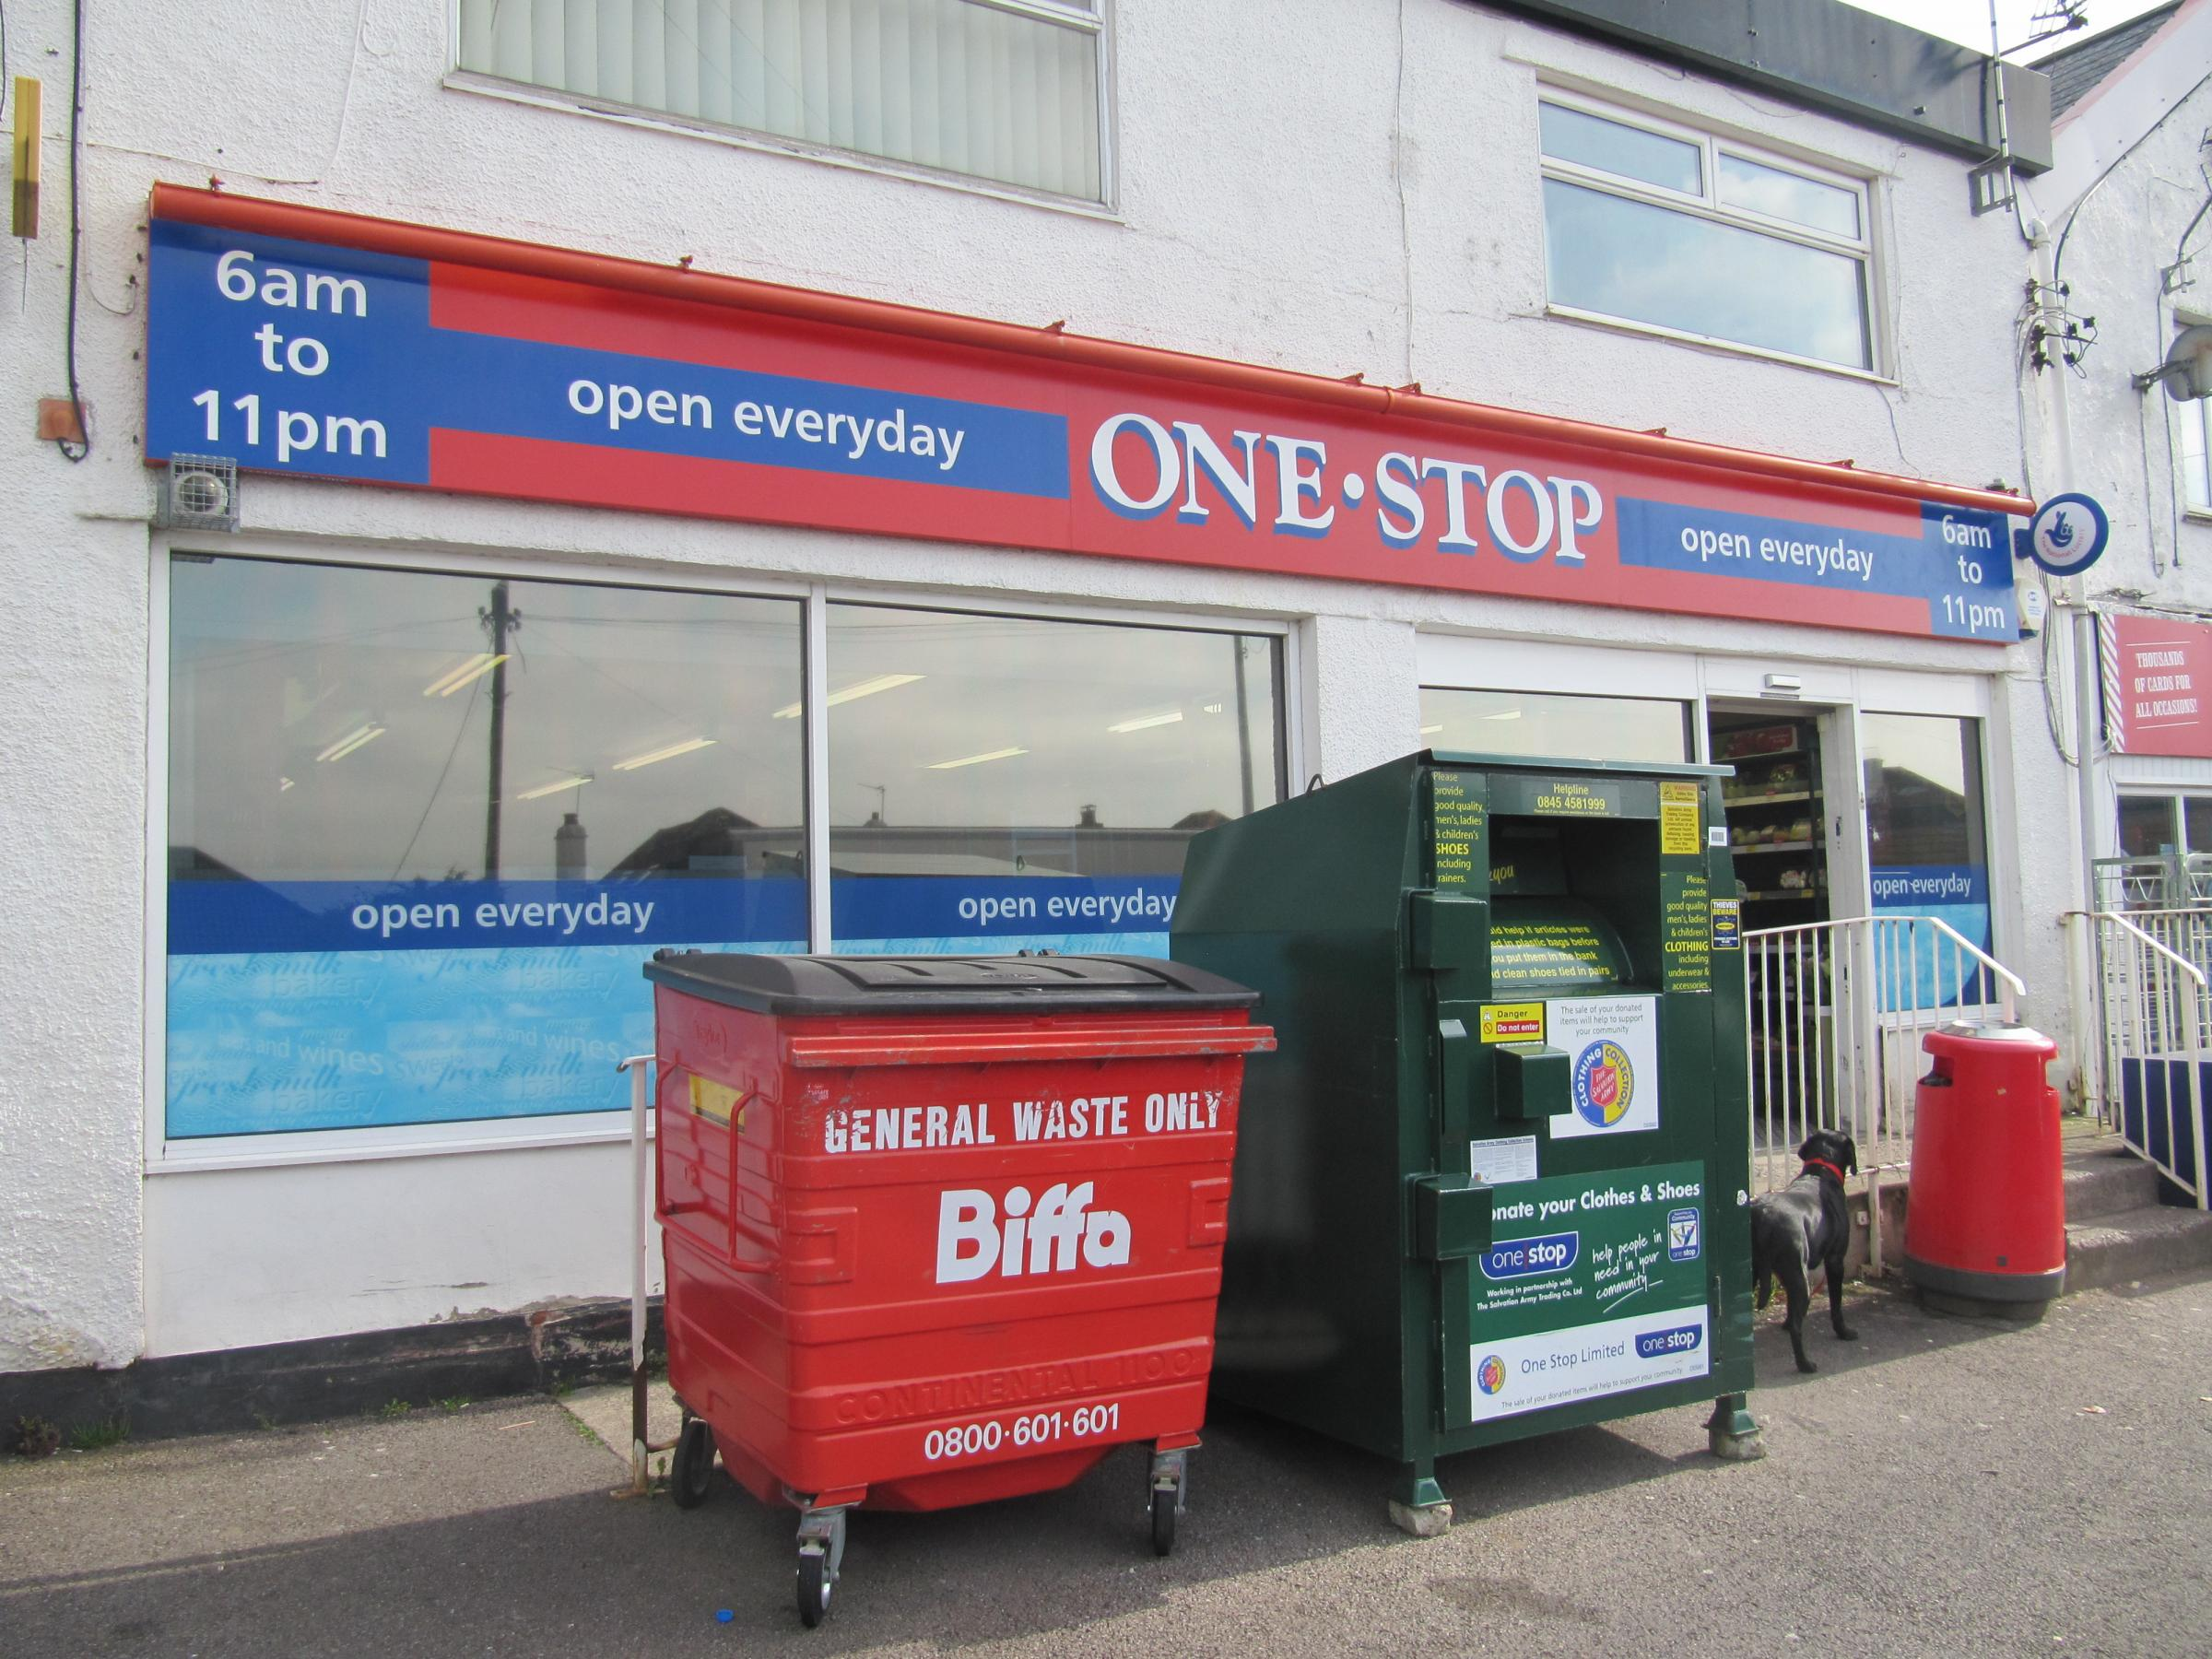 ROBBERY: The One Stop Shop was open as usual after the armed robbery on Thursday morning (5520594)